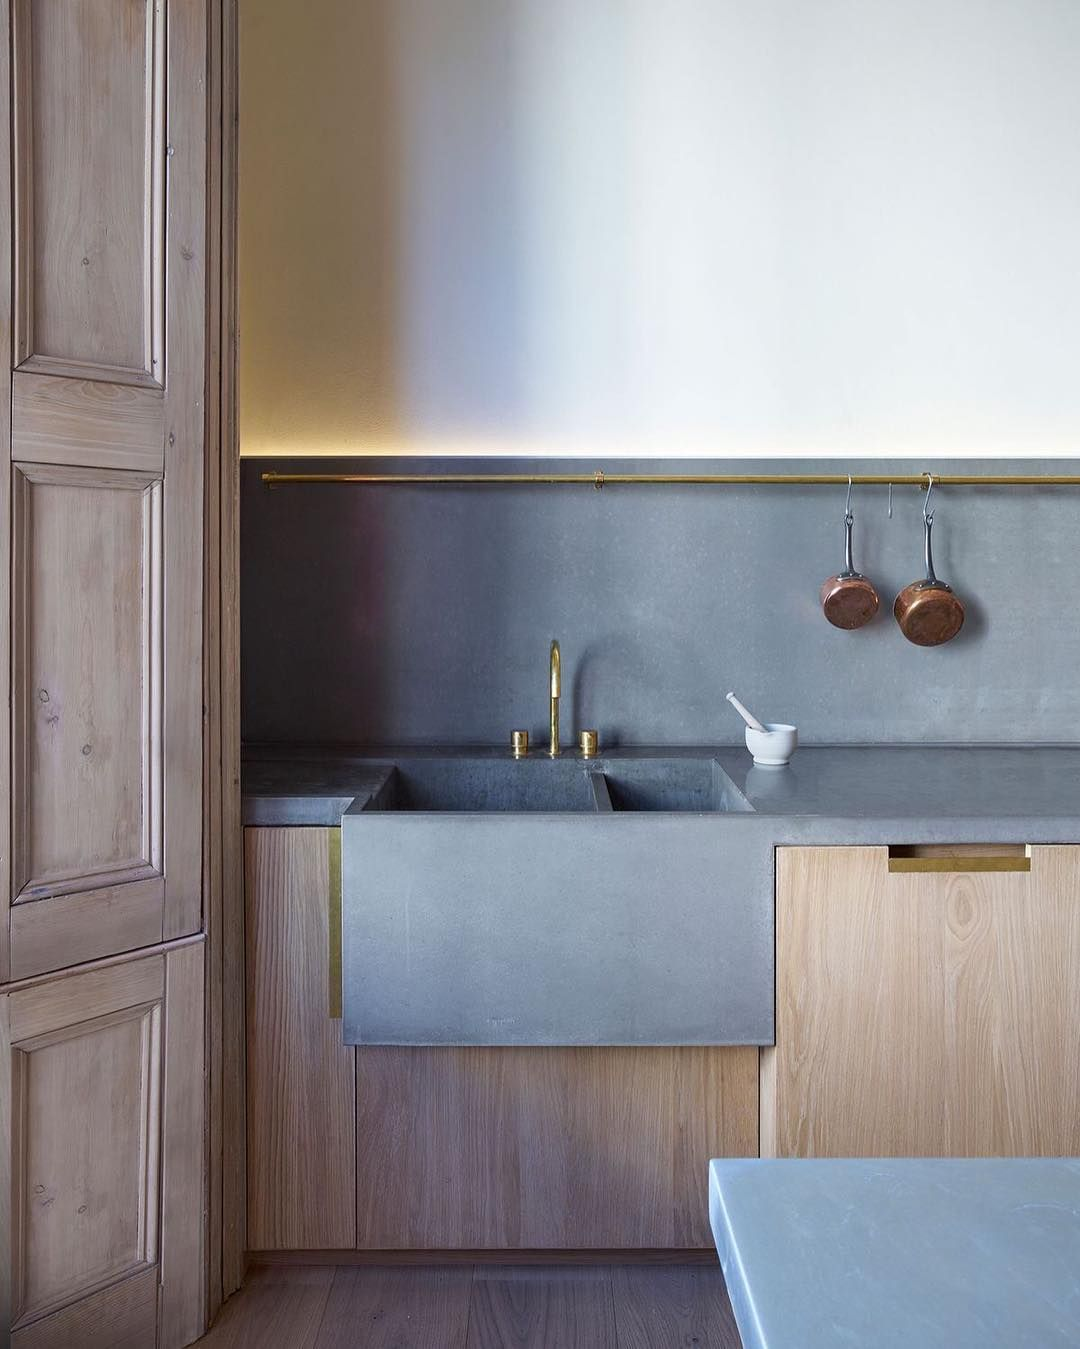 Ladbroke Grove London McLaren Excell Architects @mclarenexcell  #kitchen #kitchendesign #instakitchen #concrete #concretebench #concretesink #interiors #interior #instainterior #design #instadesign #timber #brass #mclarenexcell by lucdesign